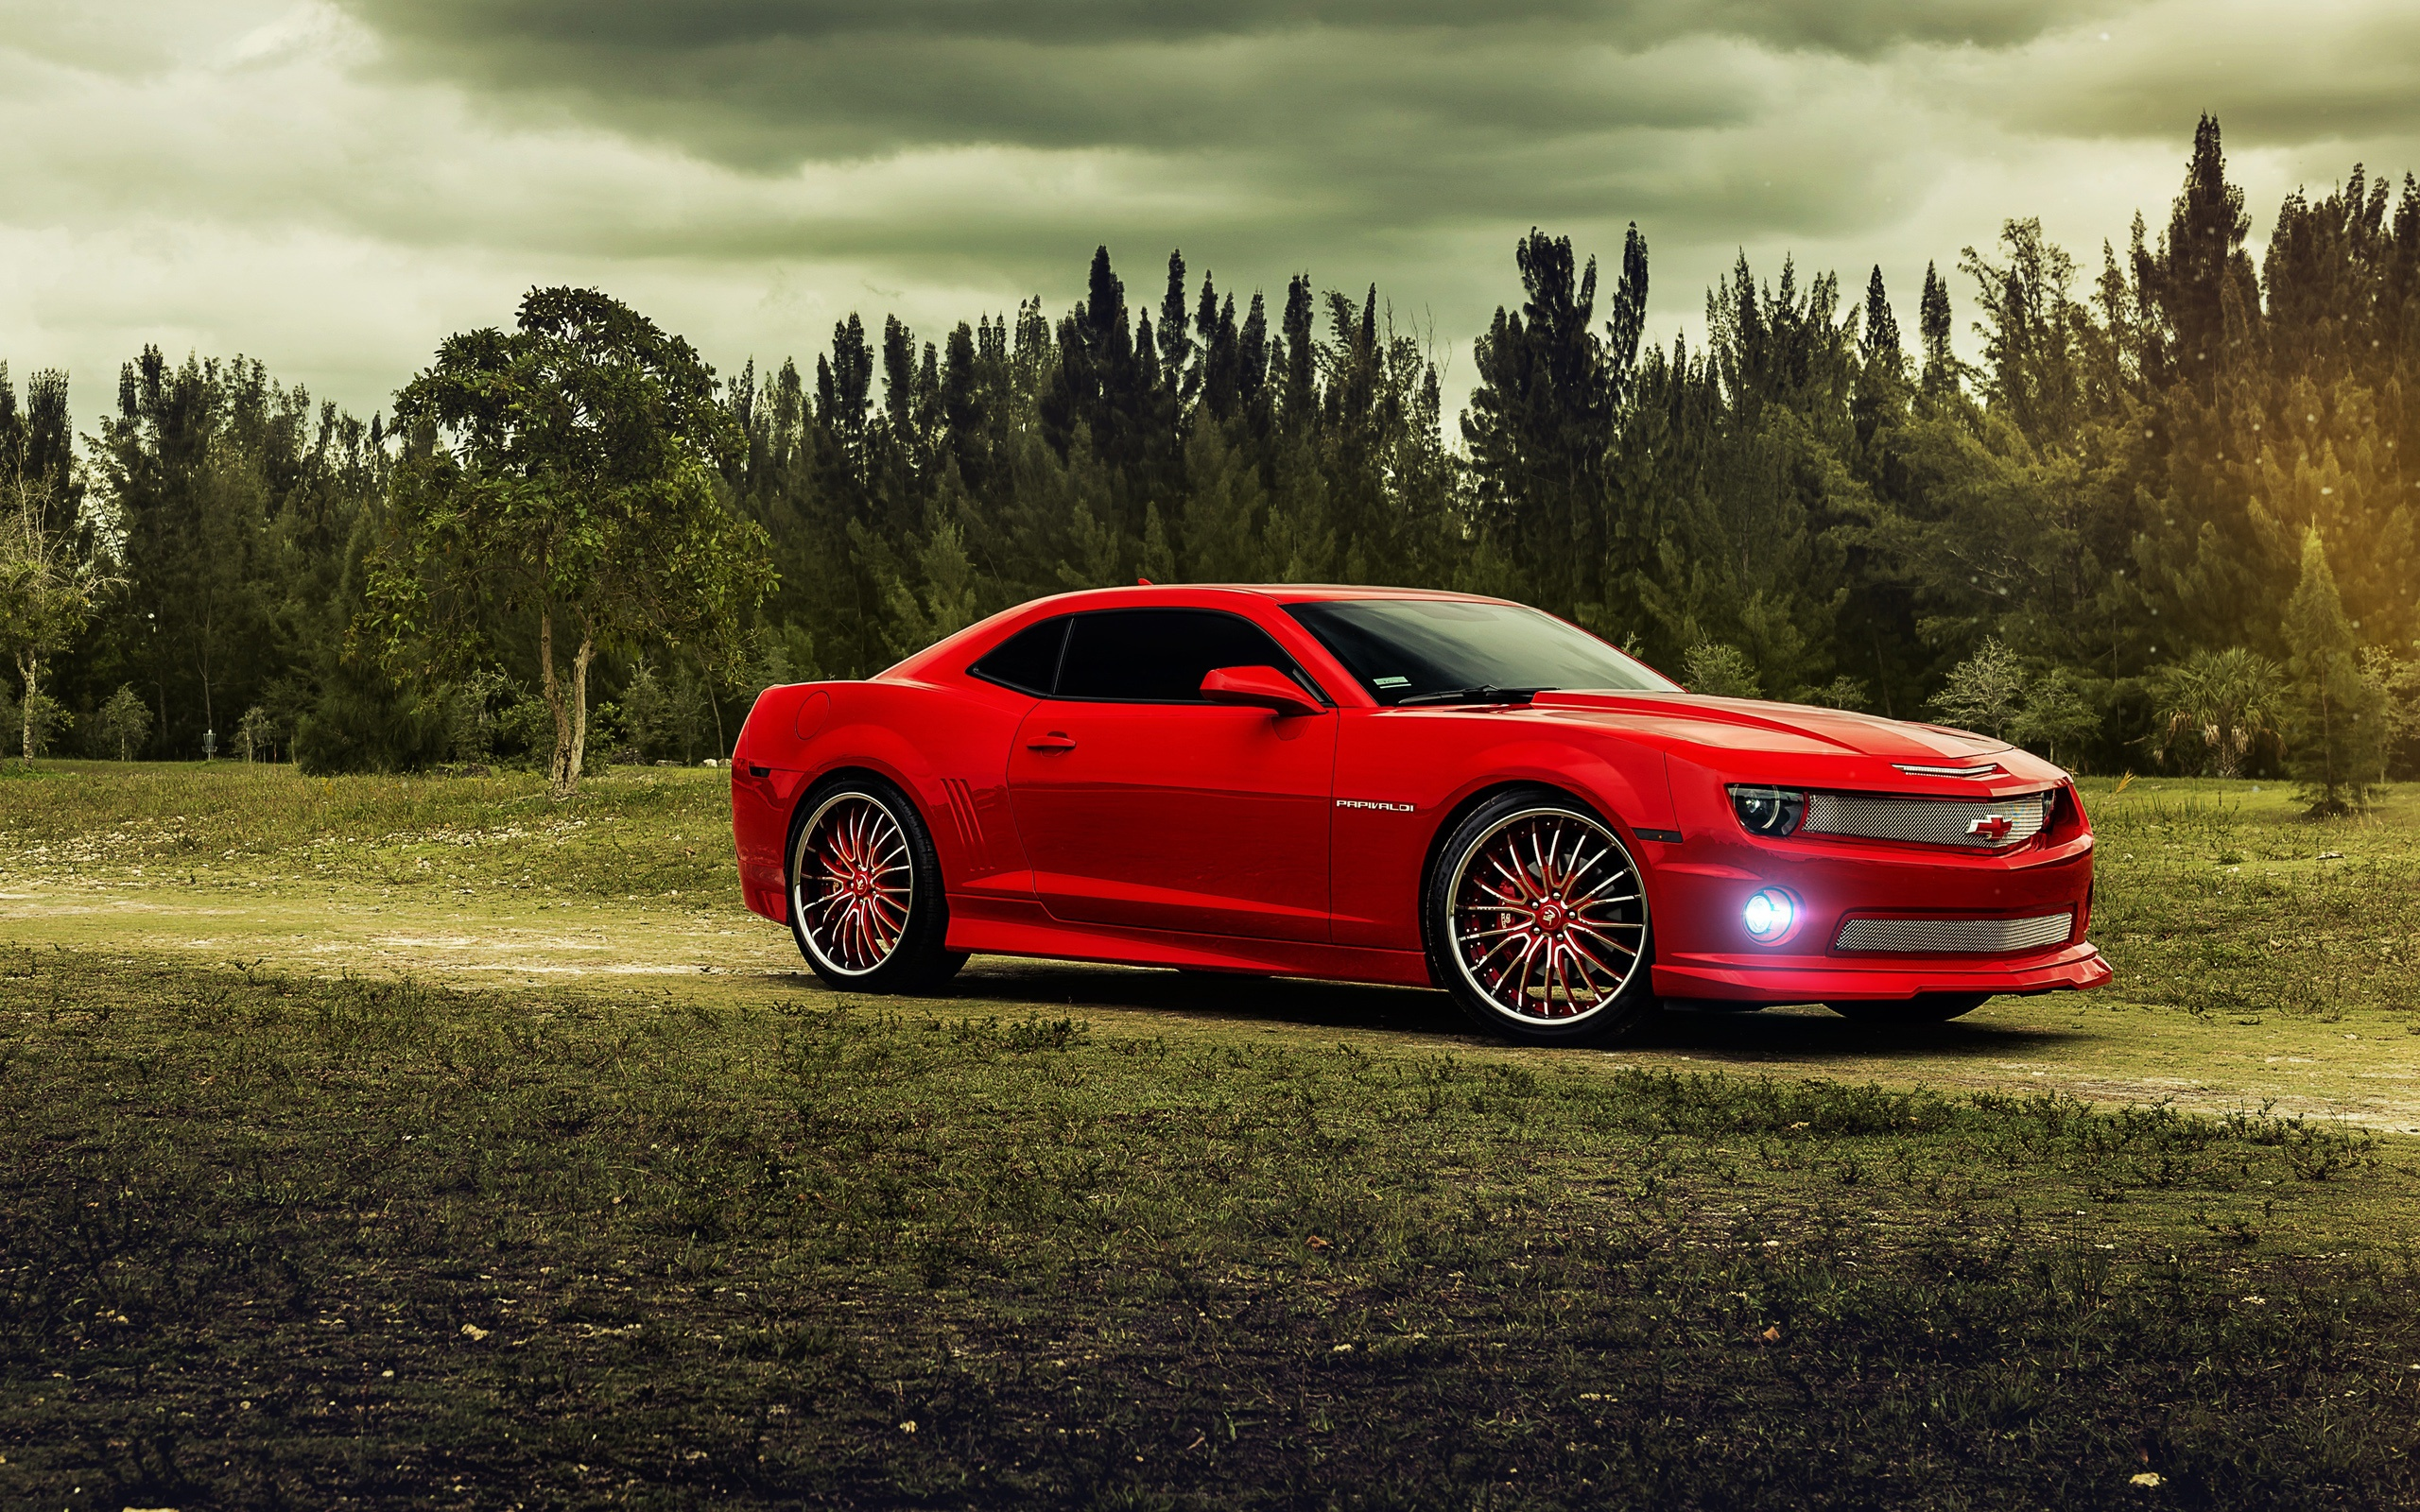 chevrolet camaro red muscle car trees clouds wallpaper